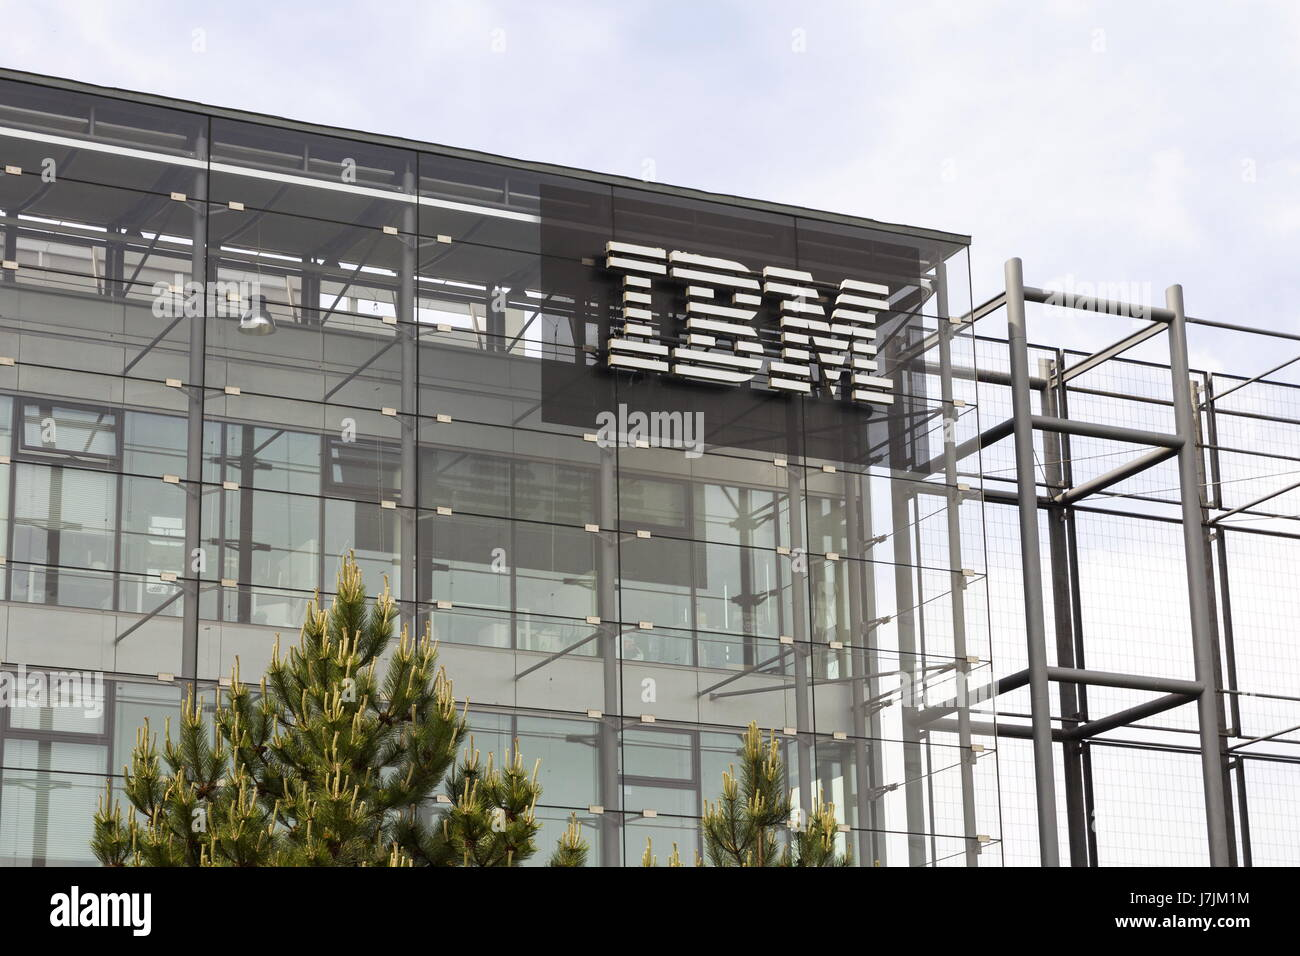 PRAGUE, CZECH REPUBLIC - MAY 22: IBM company logo on headquarters building on May 17, 2017 in Prague, Czech republic. - Stock Image